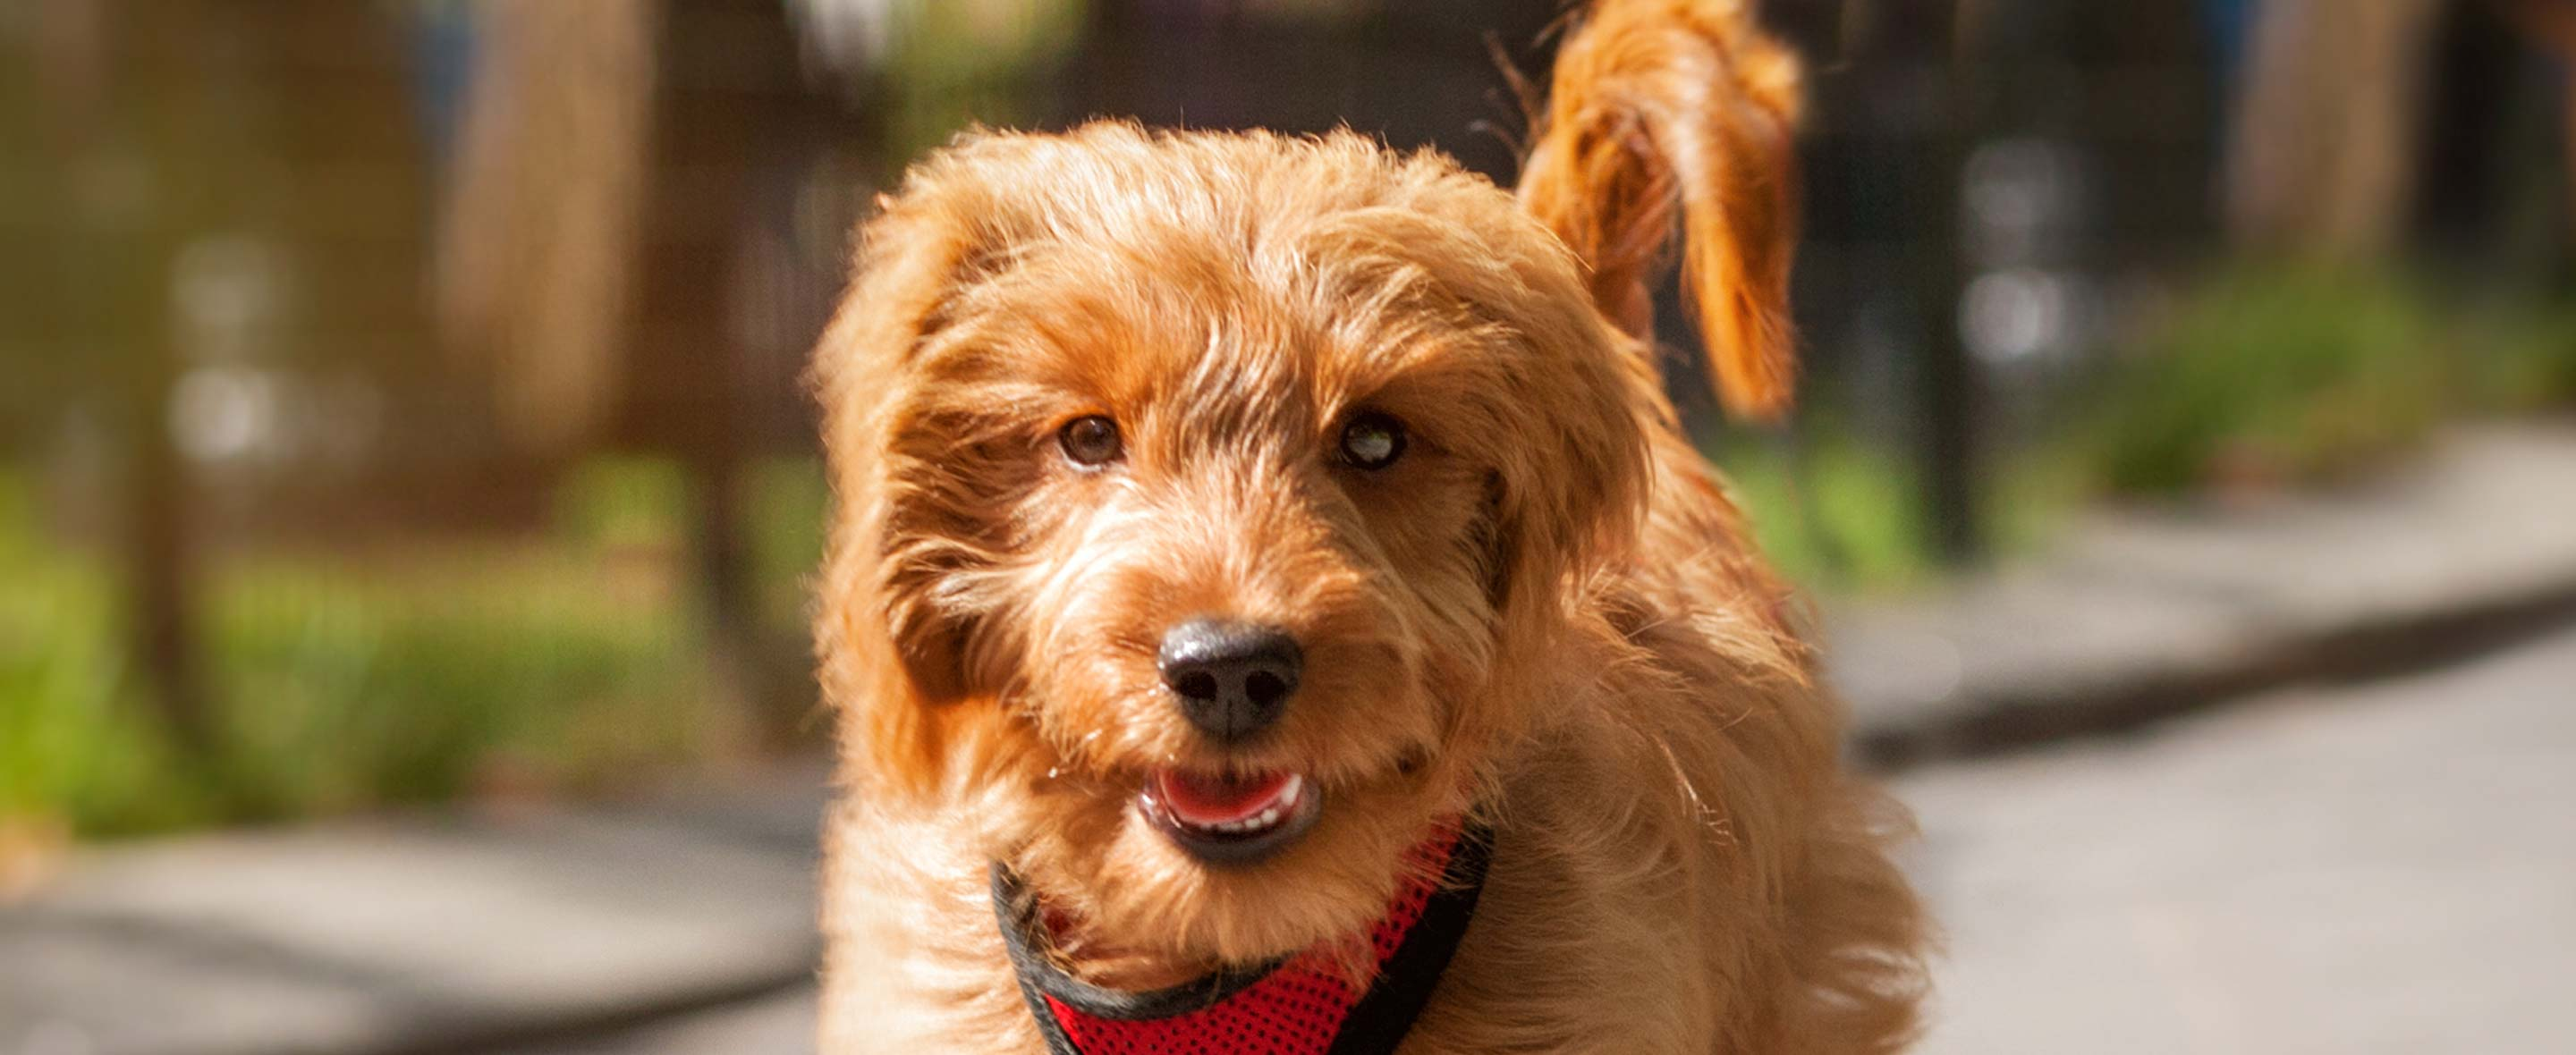 Howell NJ Veterinary Services for Freehold Pets | True Care